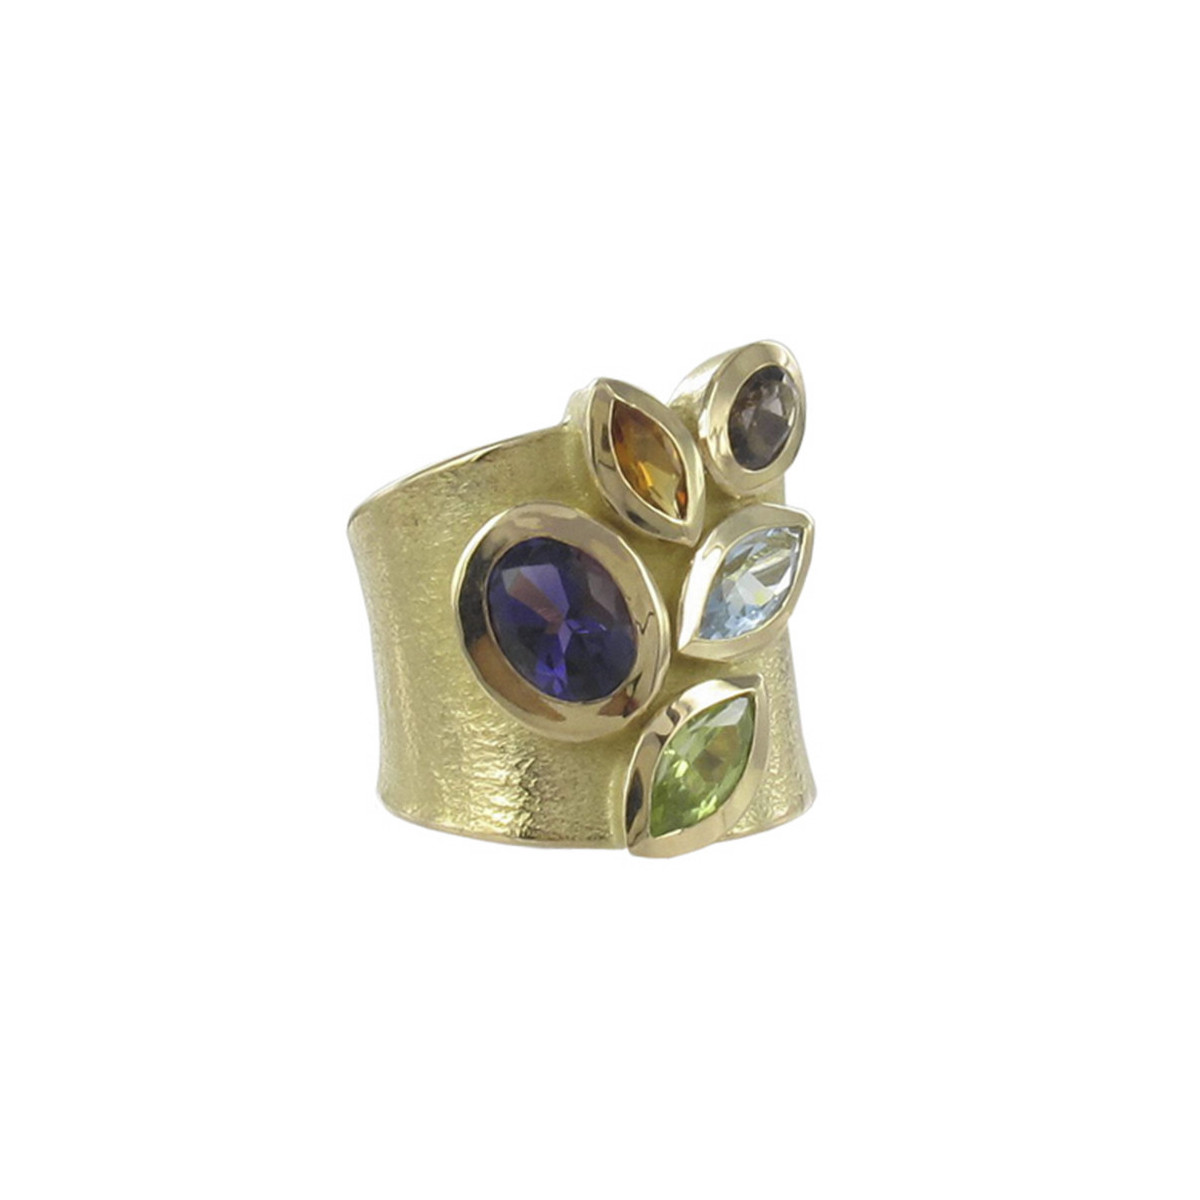 MATT GOLD RING AND STONES IN VARIED COLOR